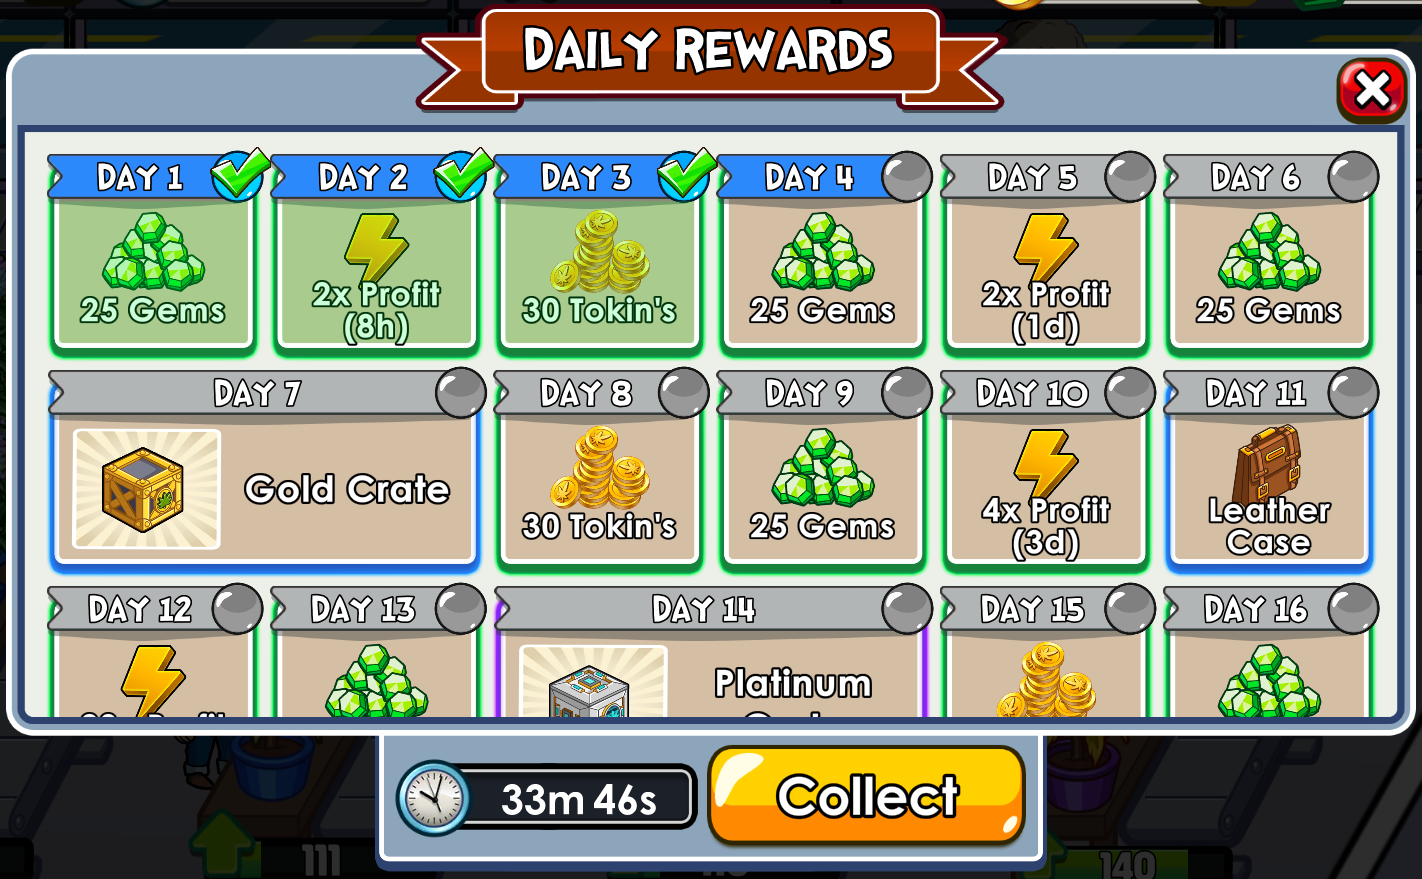 DailyRewards.png